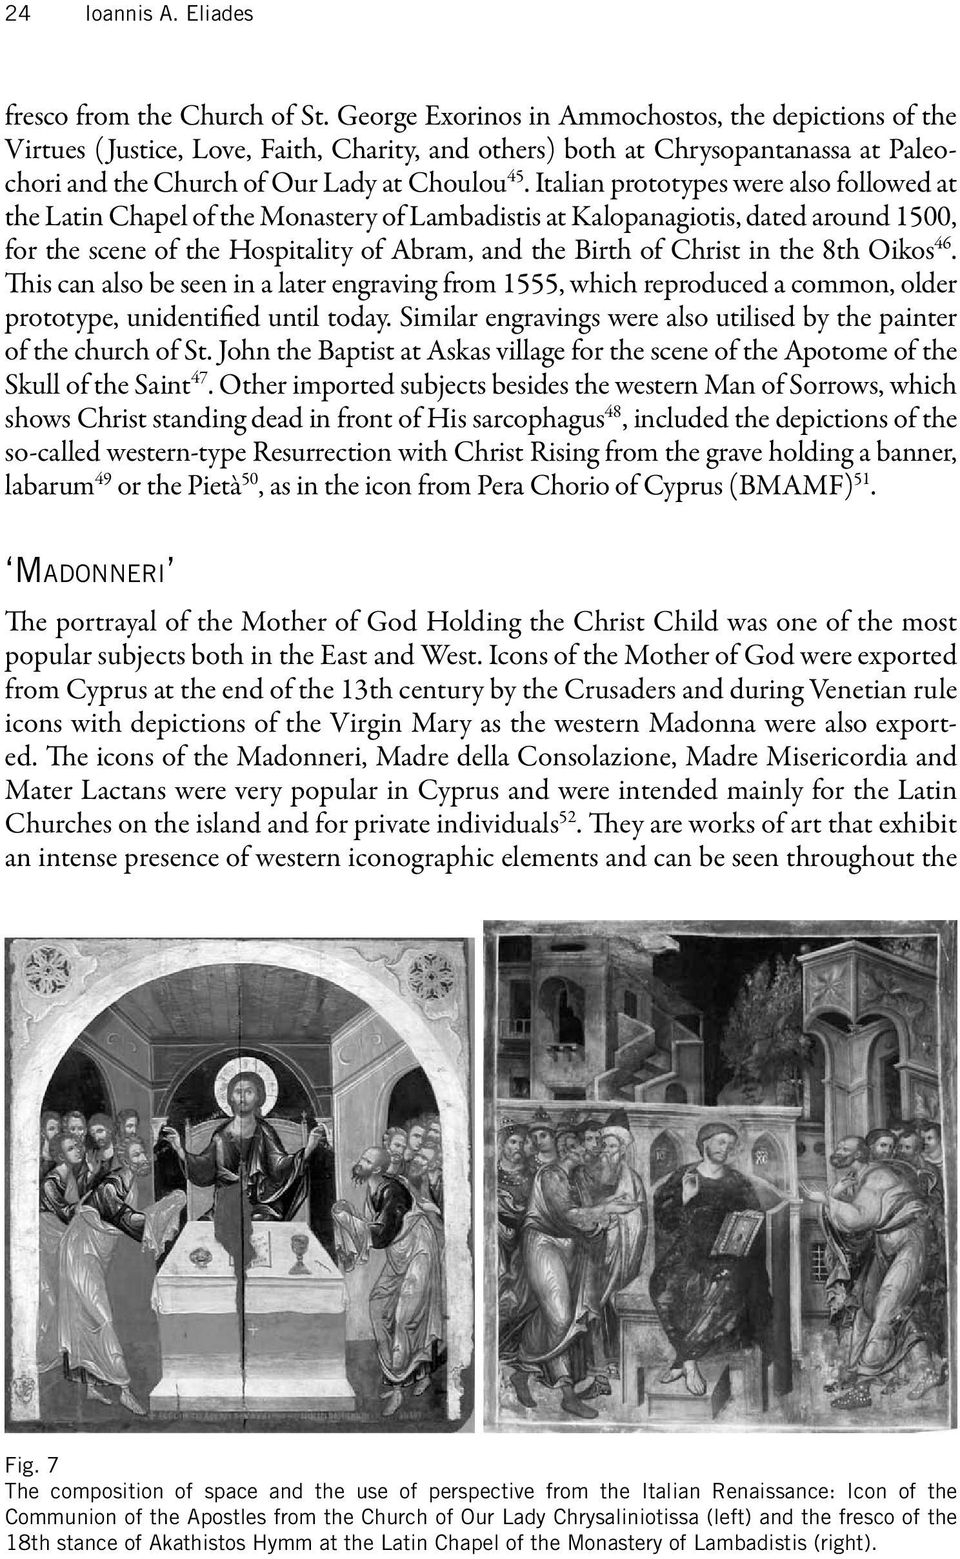 Italian prototypes were also followed at the Latin Chapel of the Monastery of Lambadistis at Kalopanagiotis, dated around 1500, for the scene of the Hospitality of Abram, and the Birth of Christ in